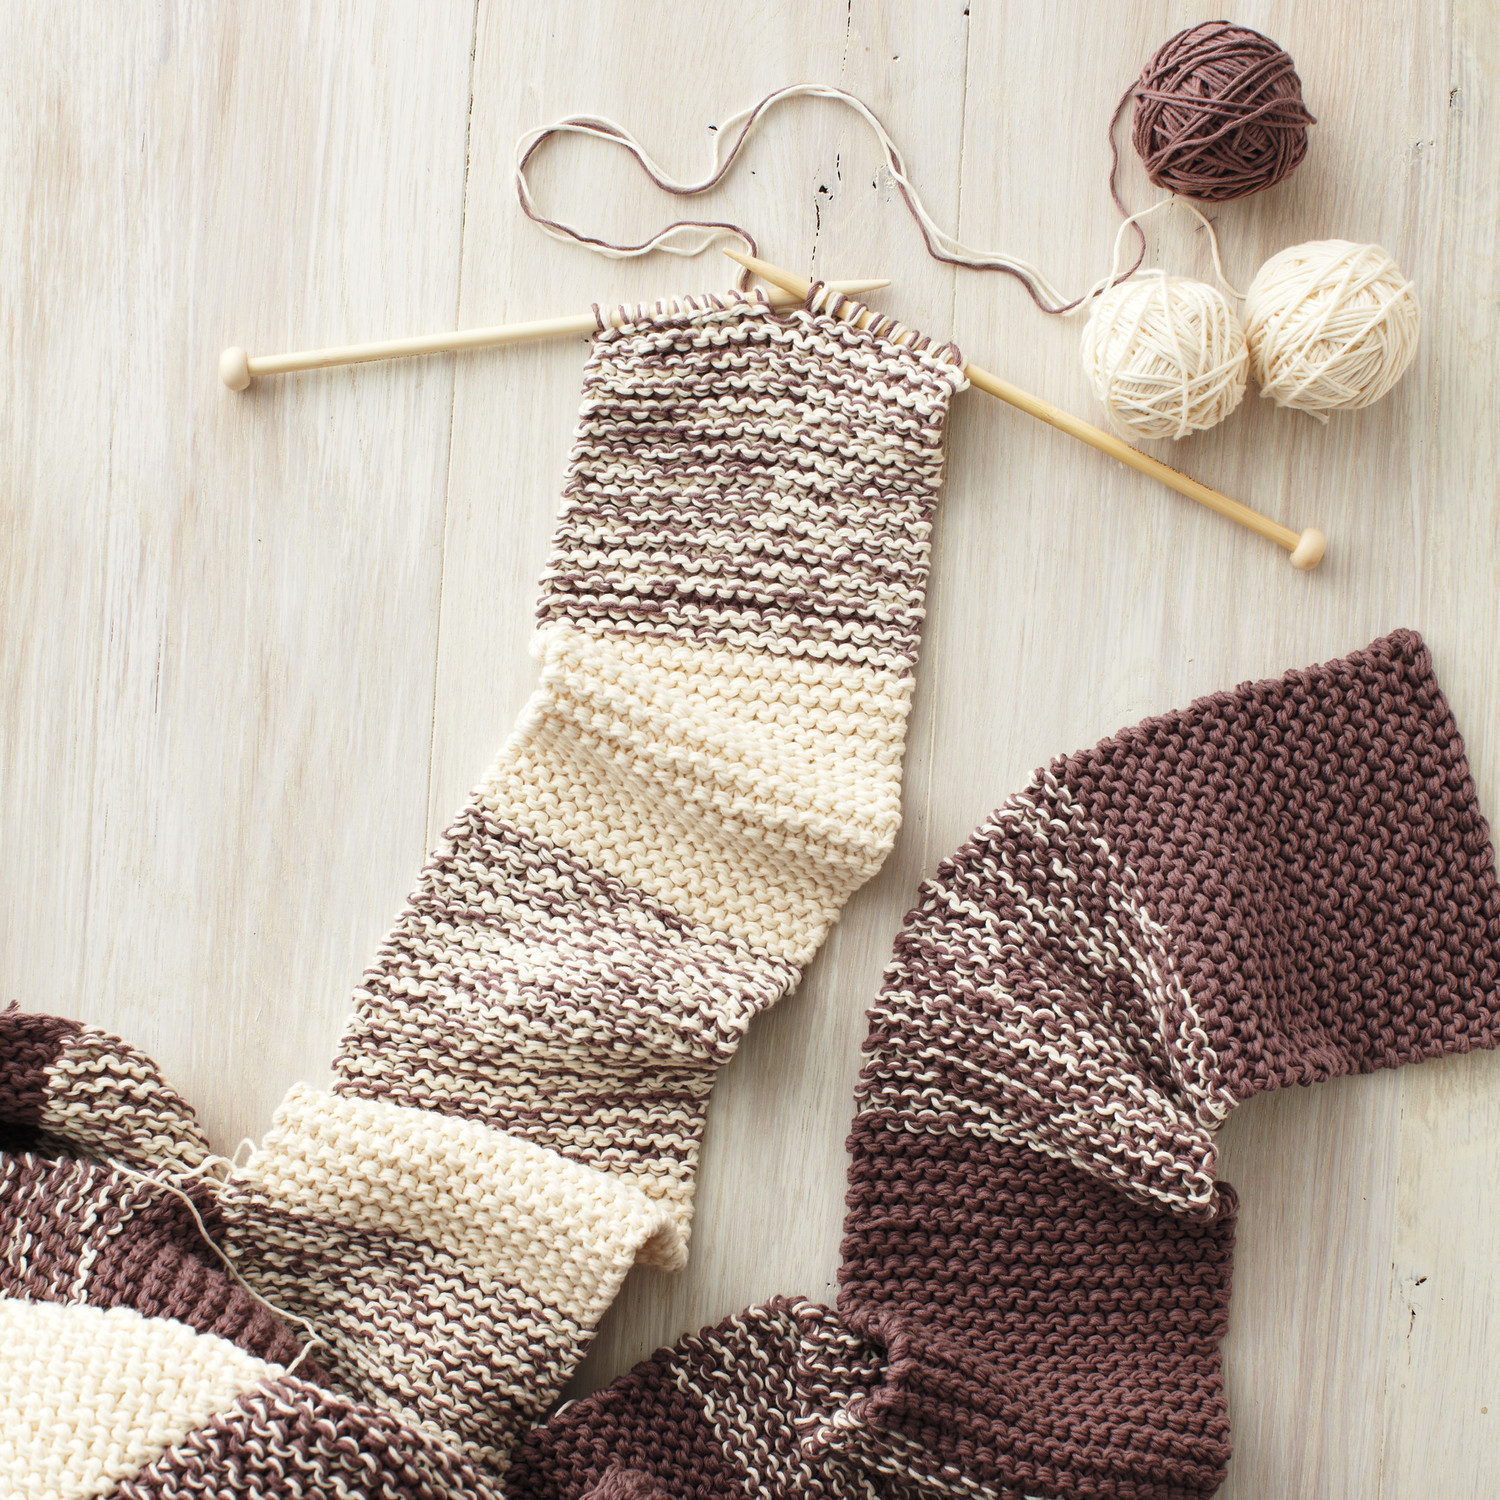 Elegant Knitting Ideas Charming Patterns and Creative Projects Knitting Ideas Of Superb 43 Images Knitting Ideas